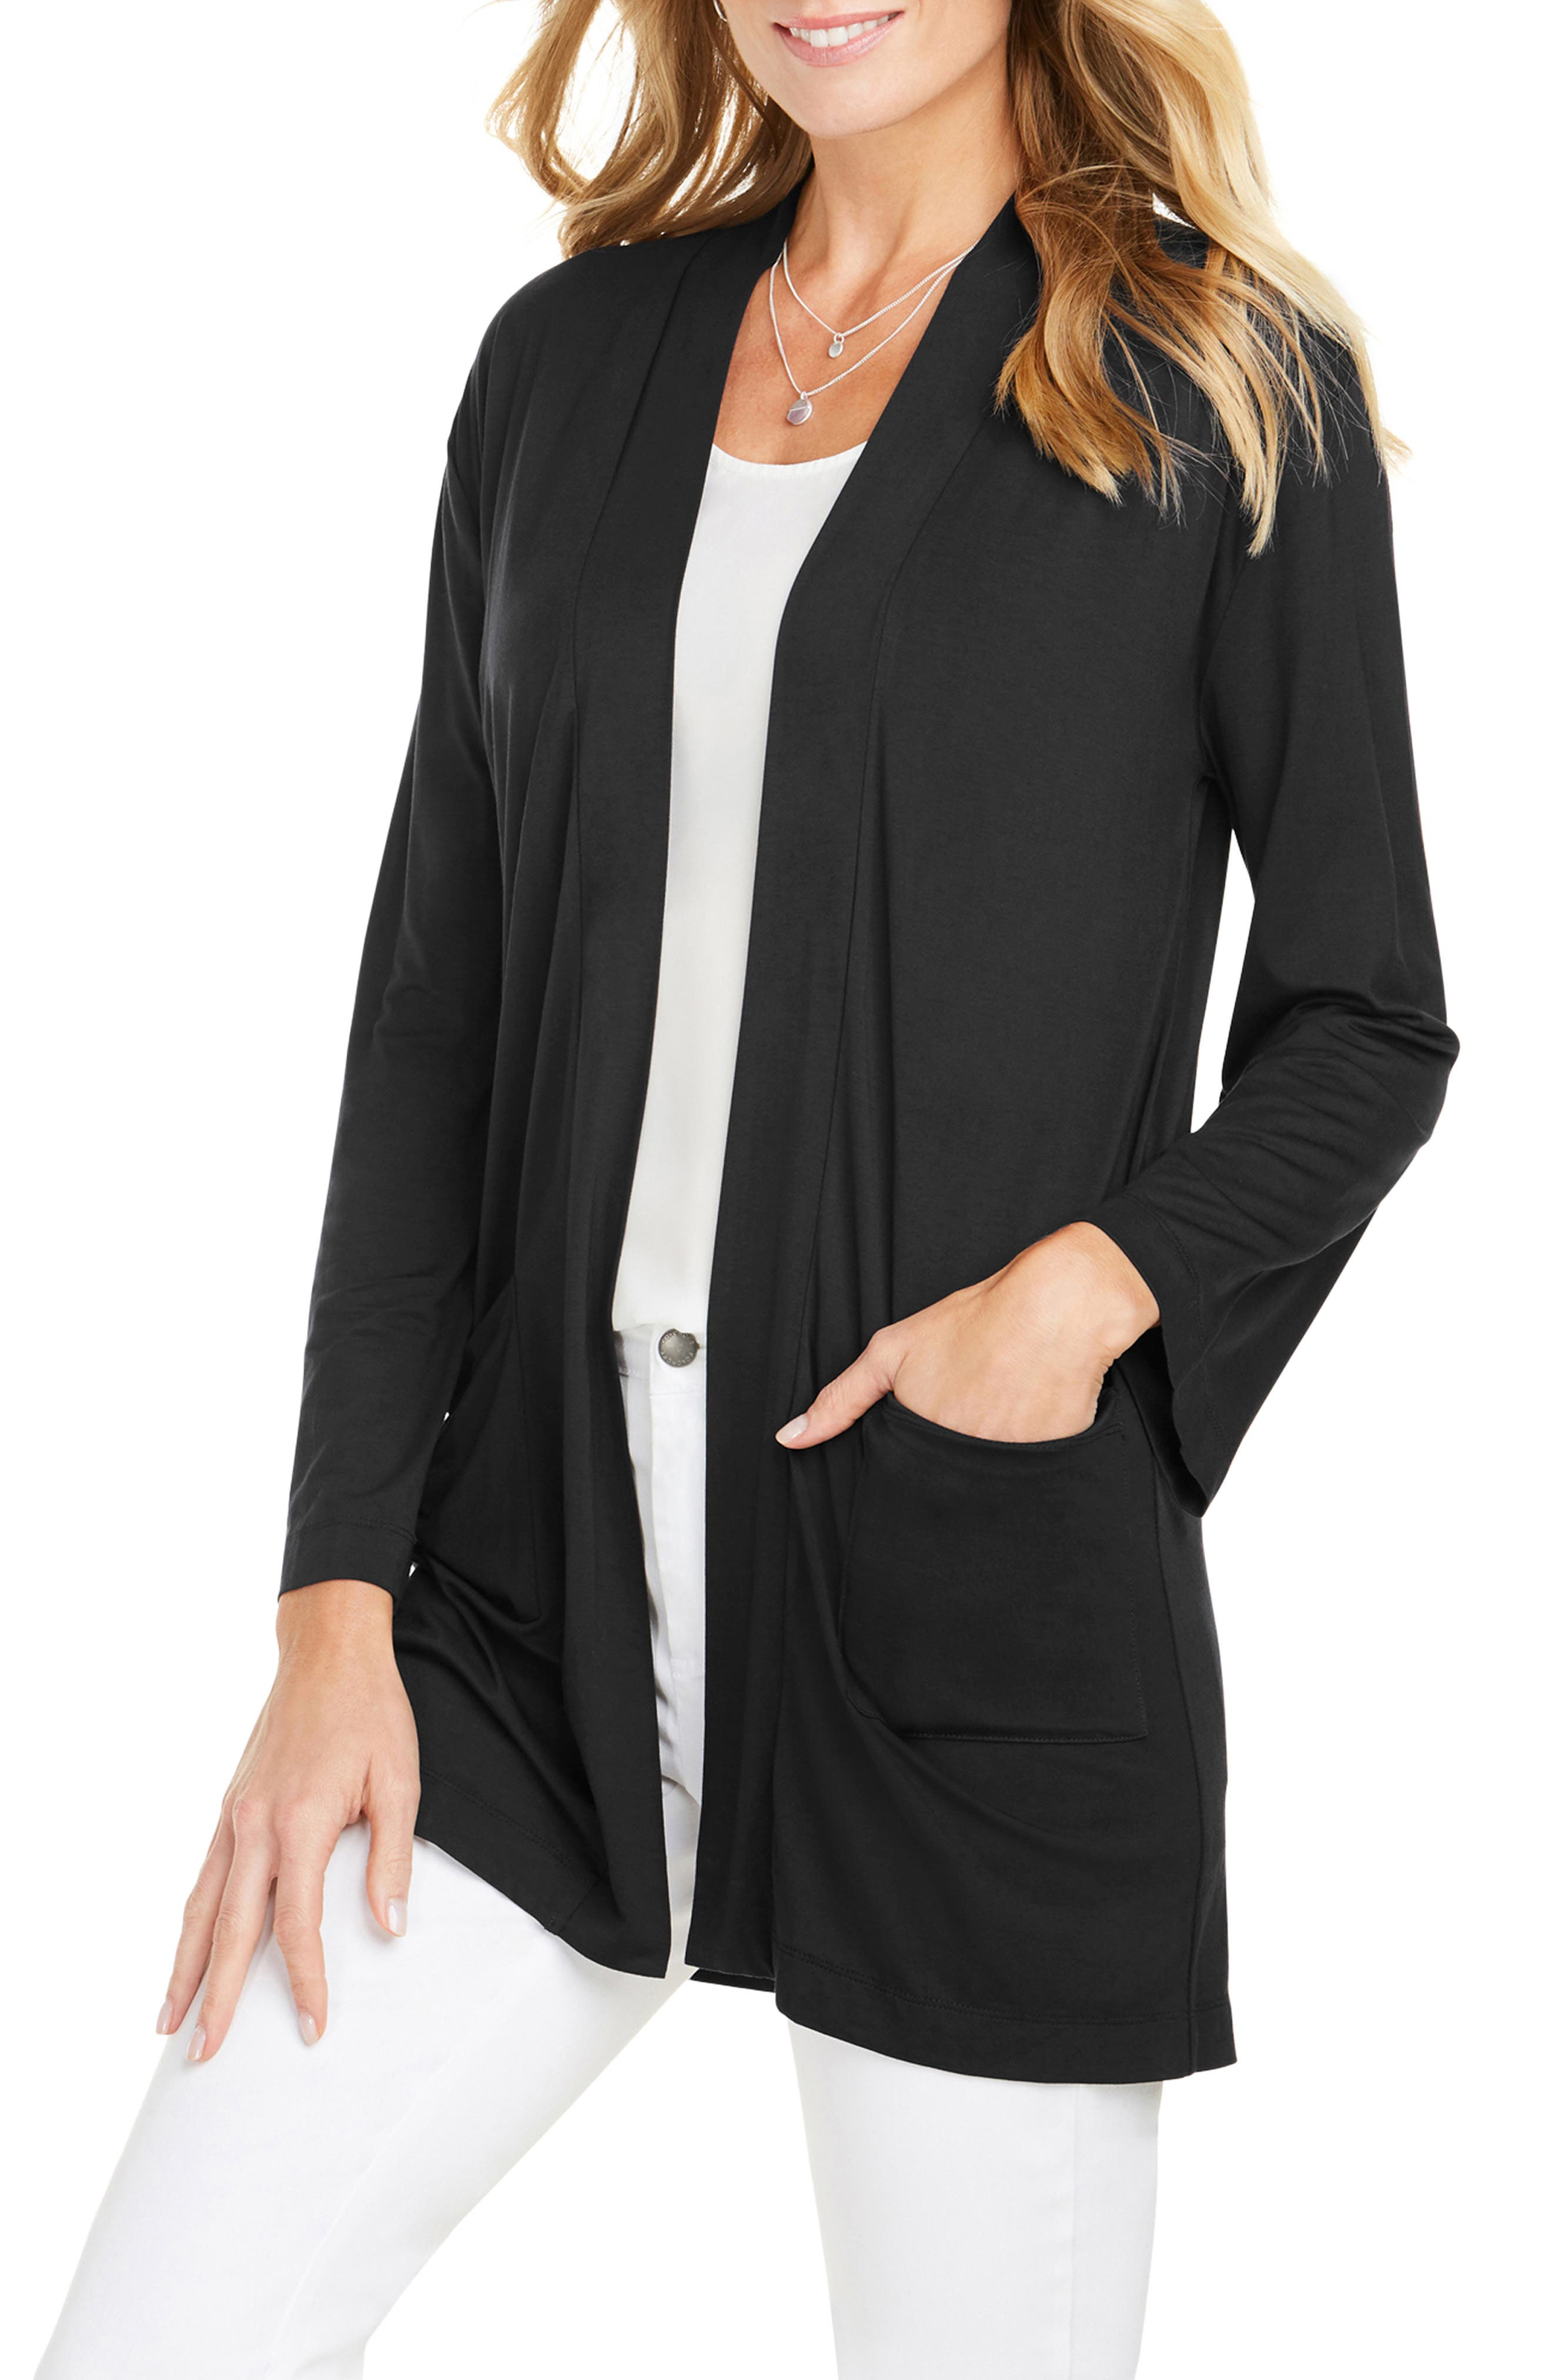 Foxcroft Lessie Jersey Knit Open Front Cardigan, Black